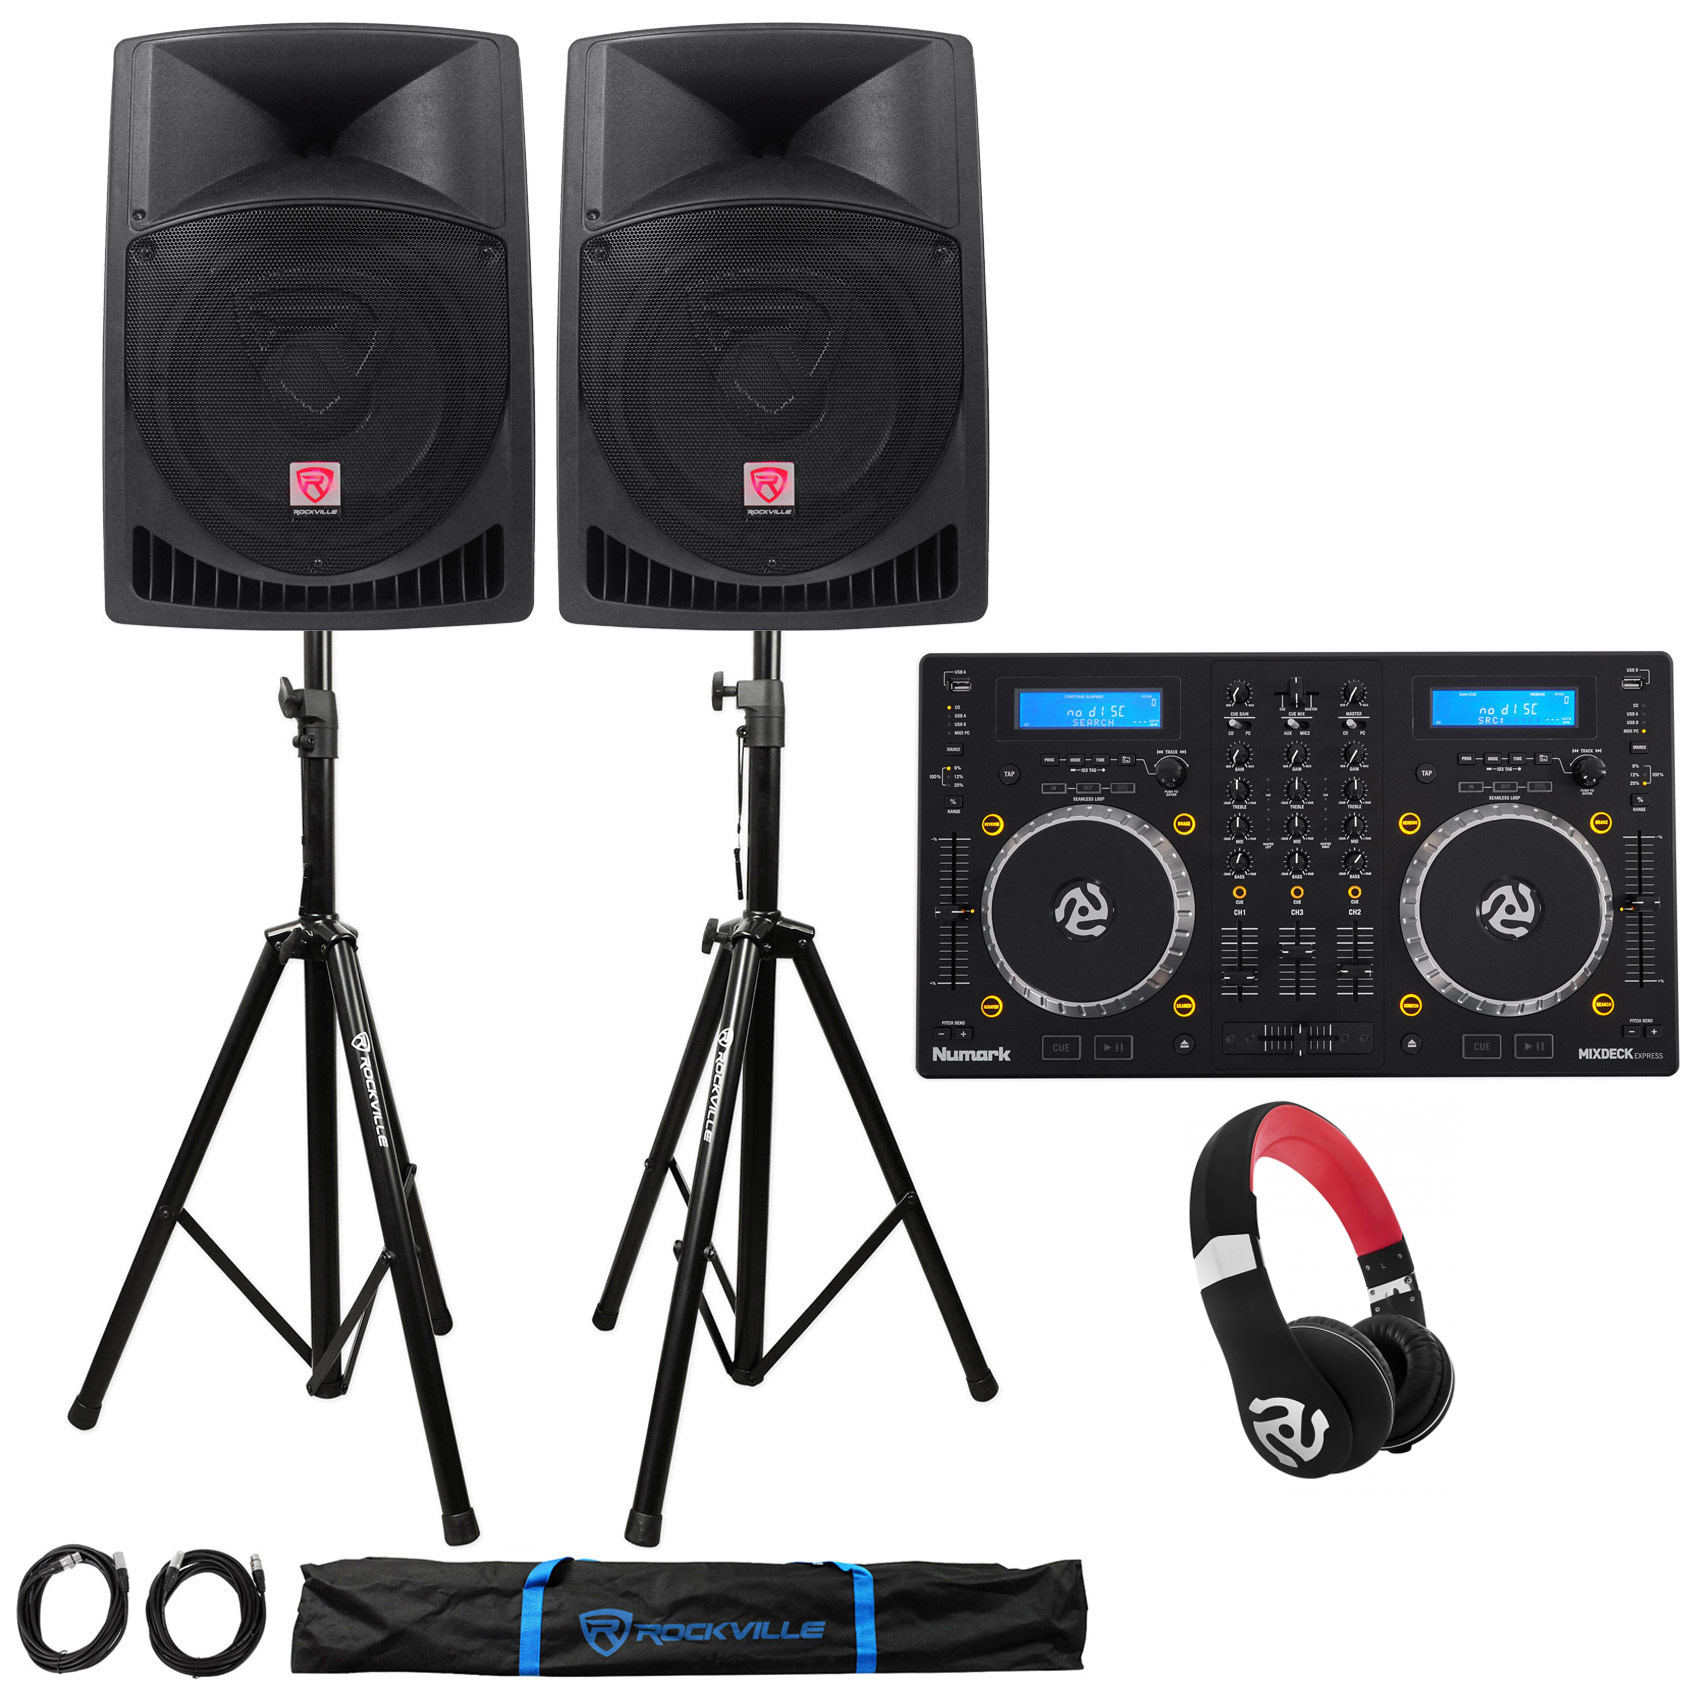 "Numark Mixdeck Express DJ Mixer/Controller+(2) 12"" Speakers+Stands+Headphones"